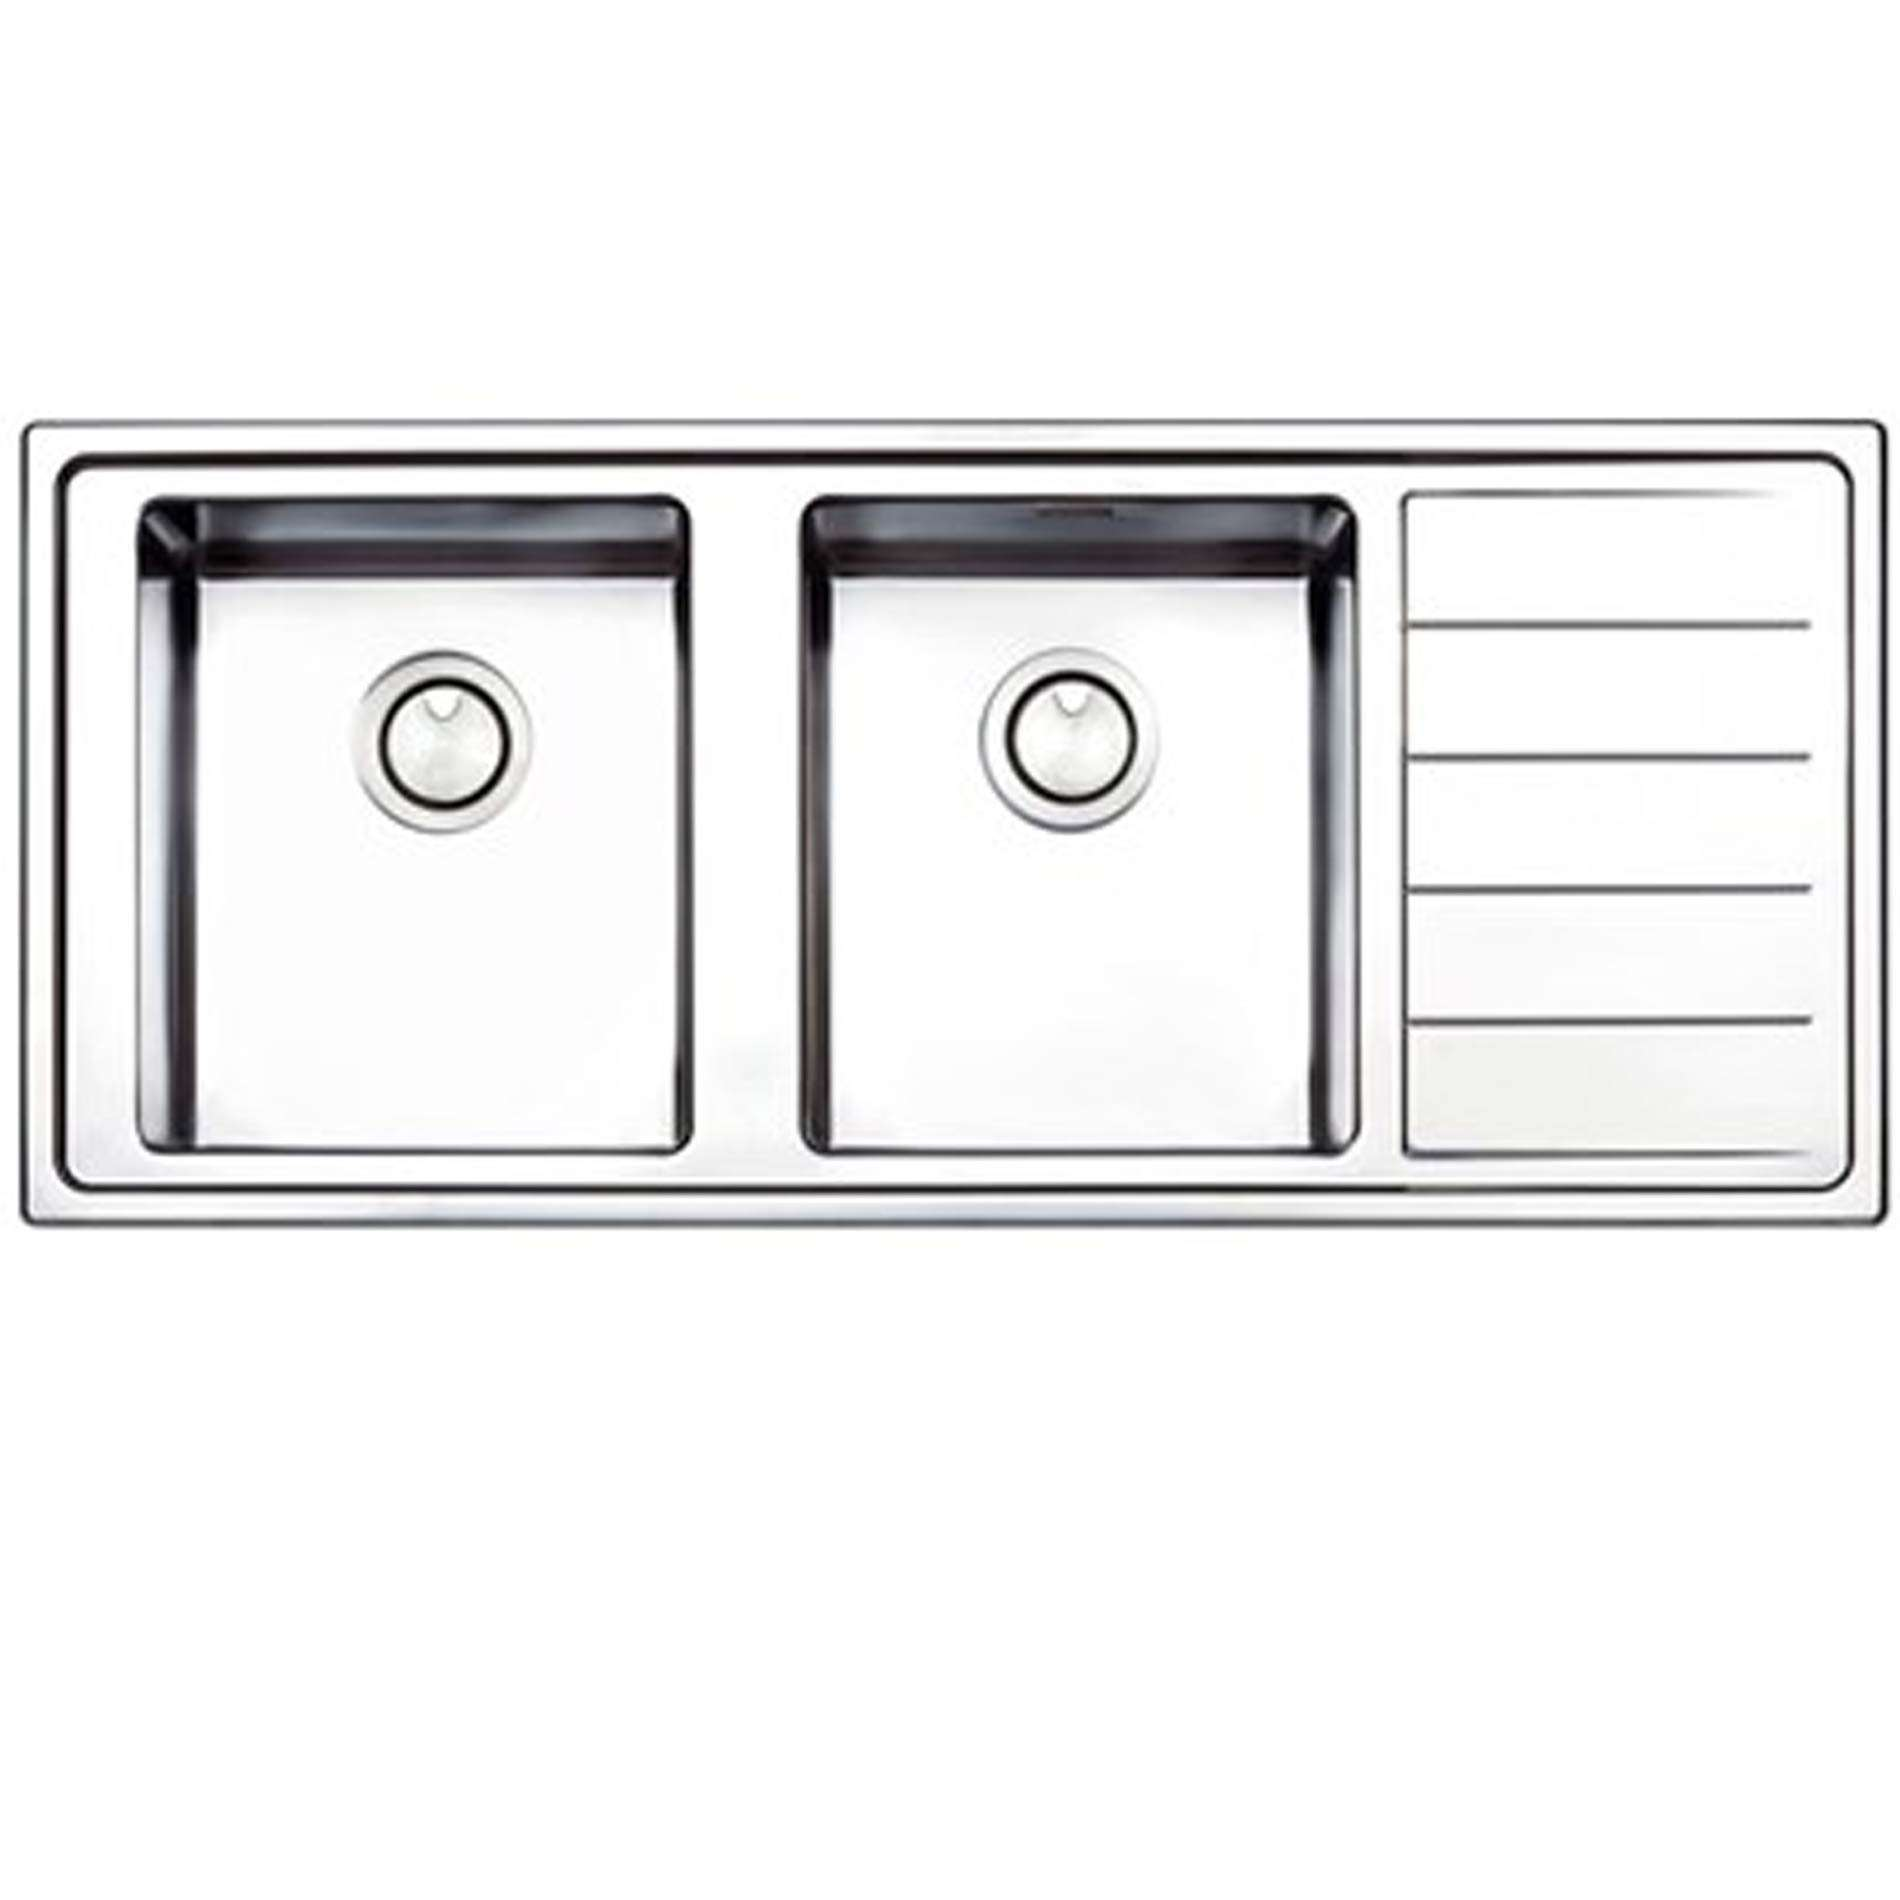 Double Bowl Stainless Steel Kitchen Sink.Clearwater Linear Plus Double Bowl Stainless Steel Sink